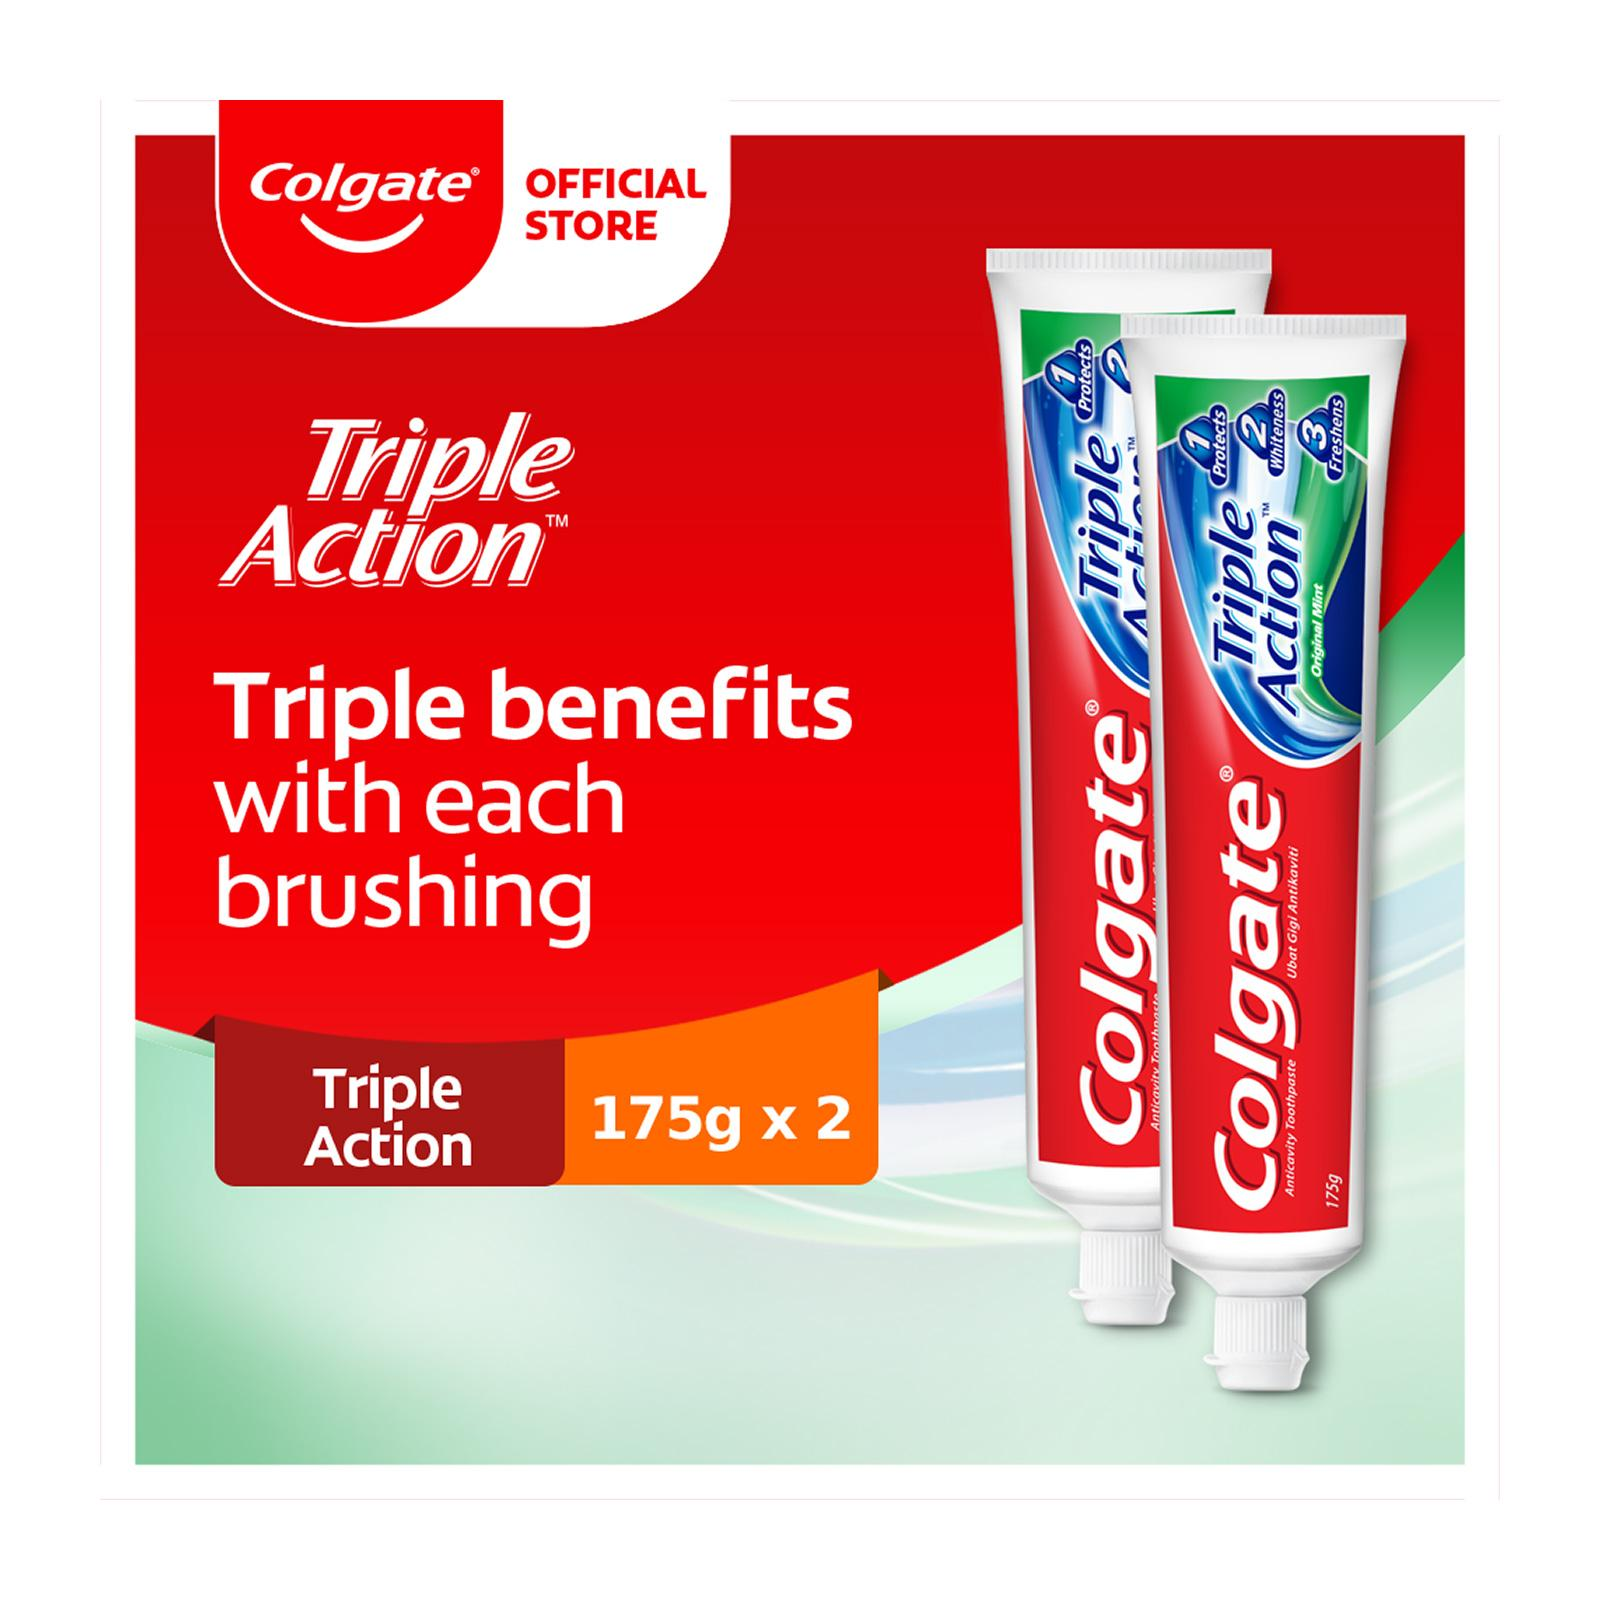 Colgate Triple Action Toothpaste Valuepack 175g x 2